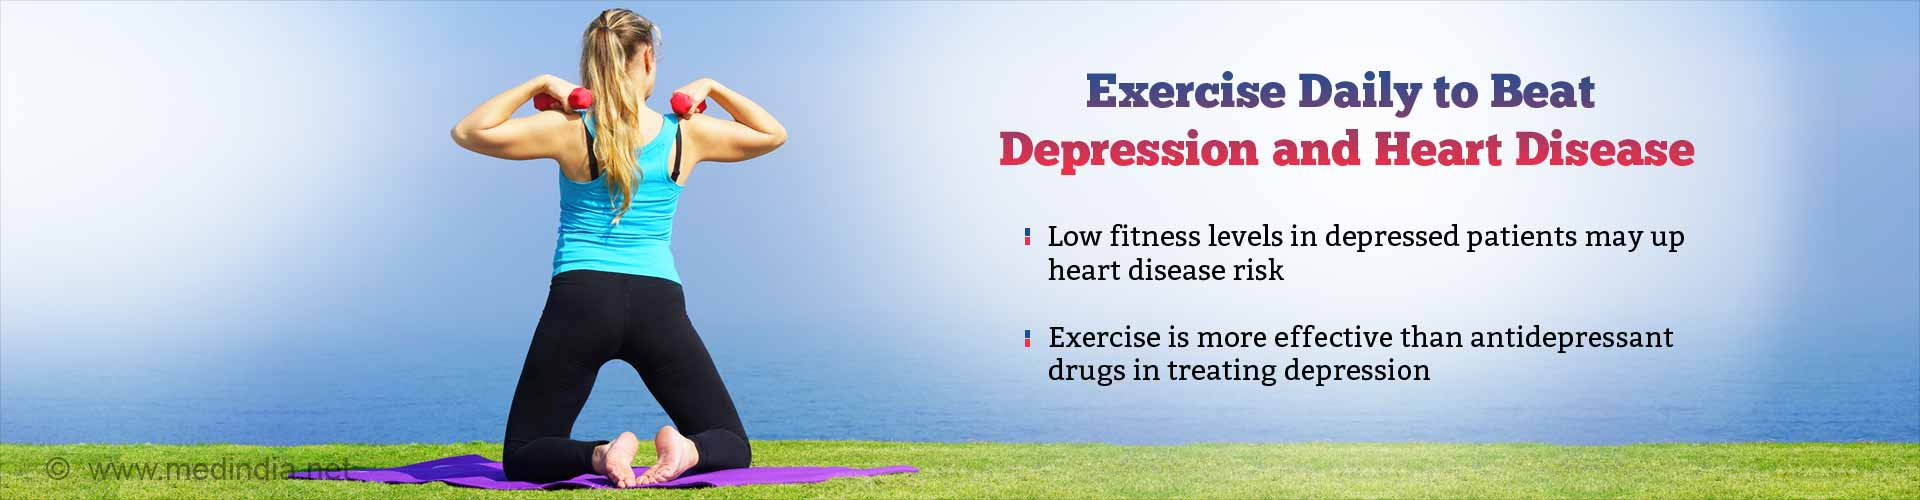 Regular Exercise in Patients With Depression Reduces Risk of Heart Disease